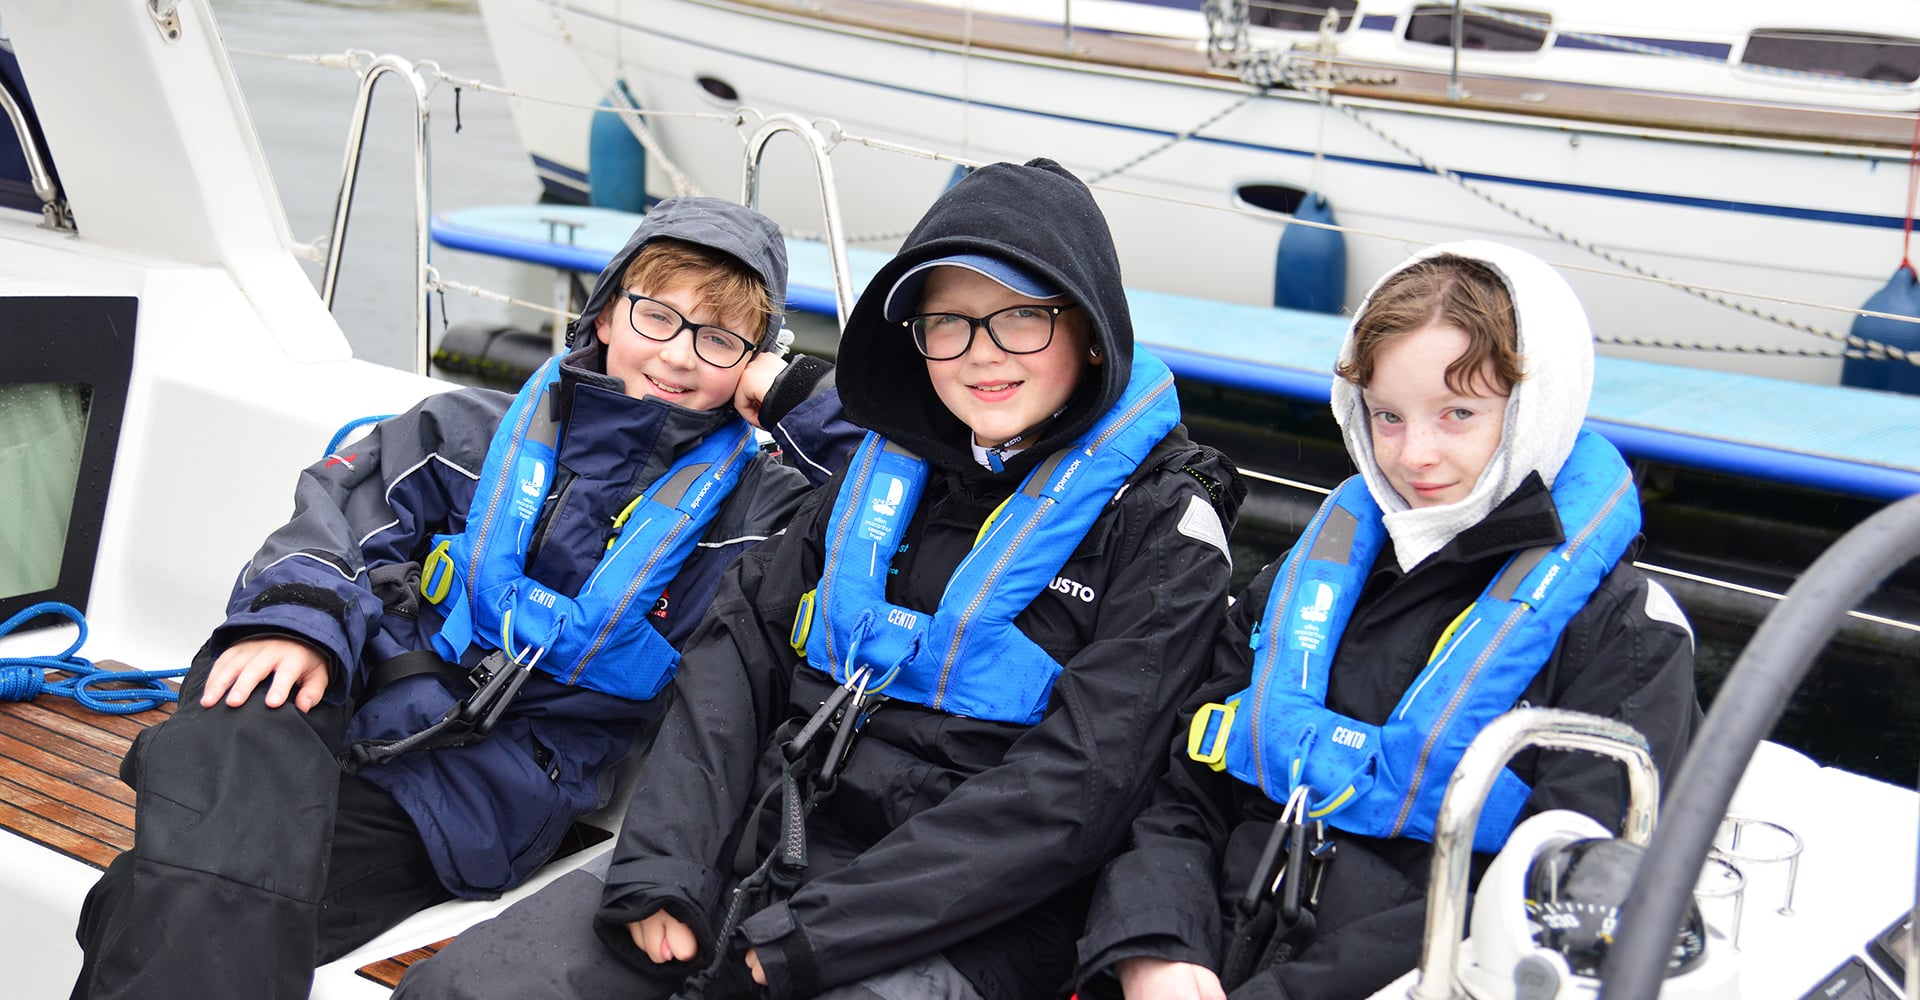 Finn relaxing on the yacht with two of his crew mates